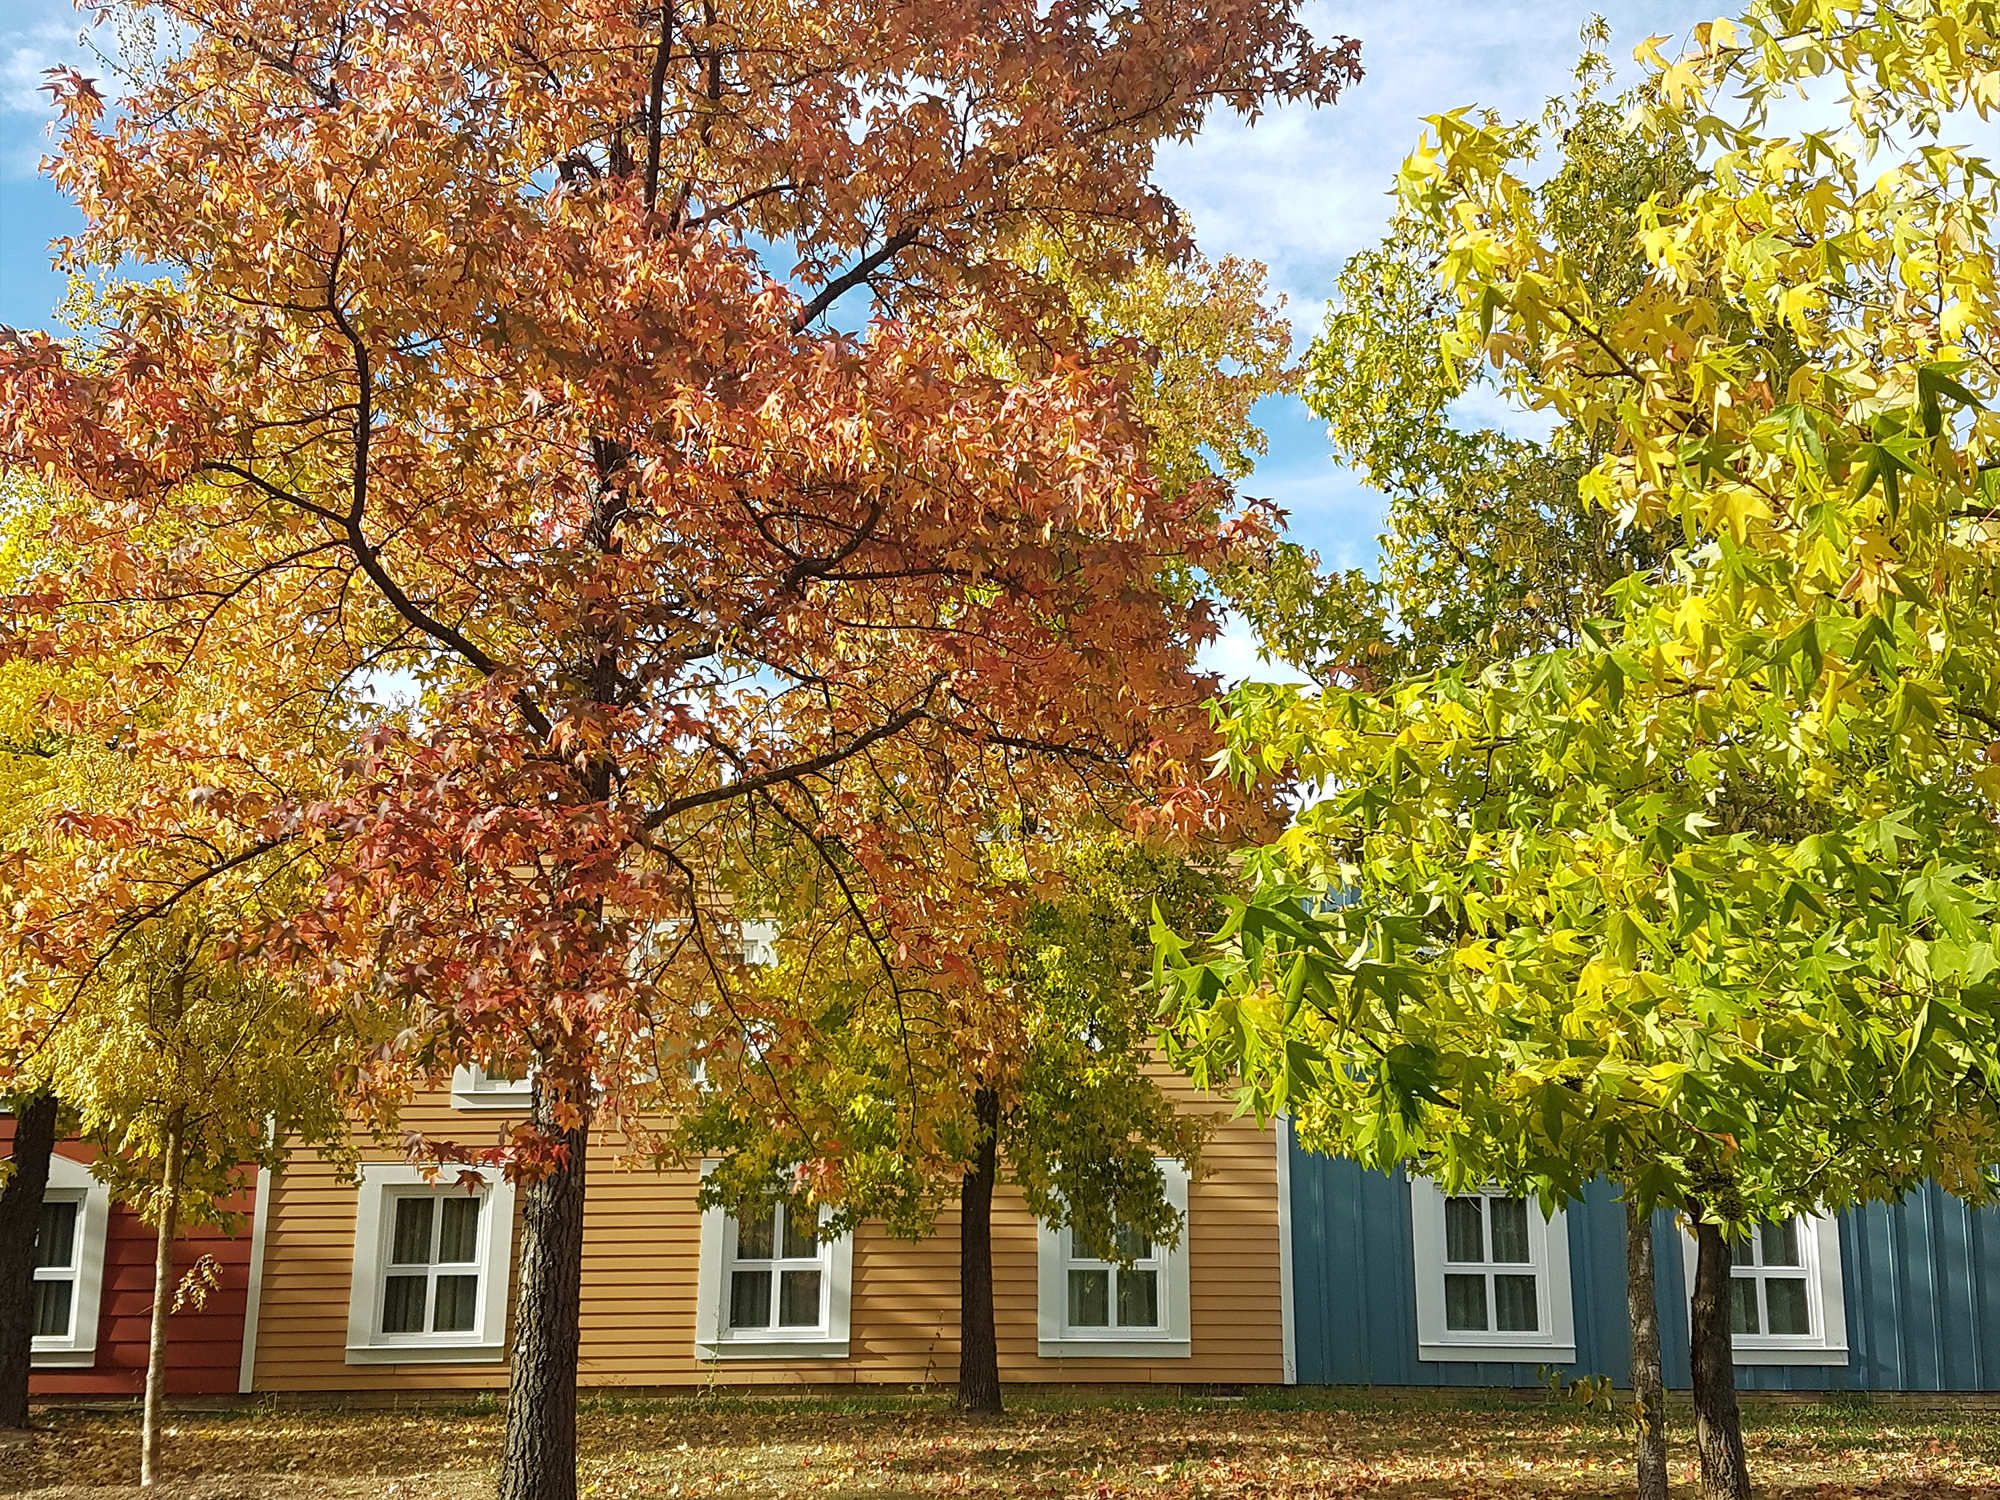 Autumn colours on trees outsides colourful buildings | The third quarter